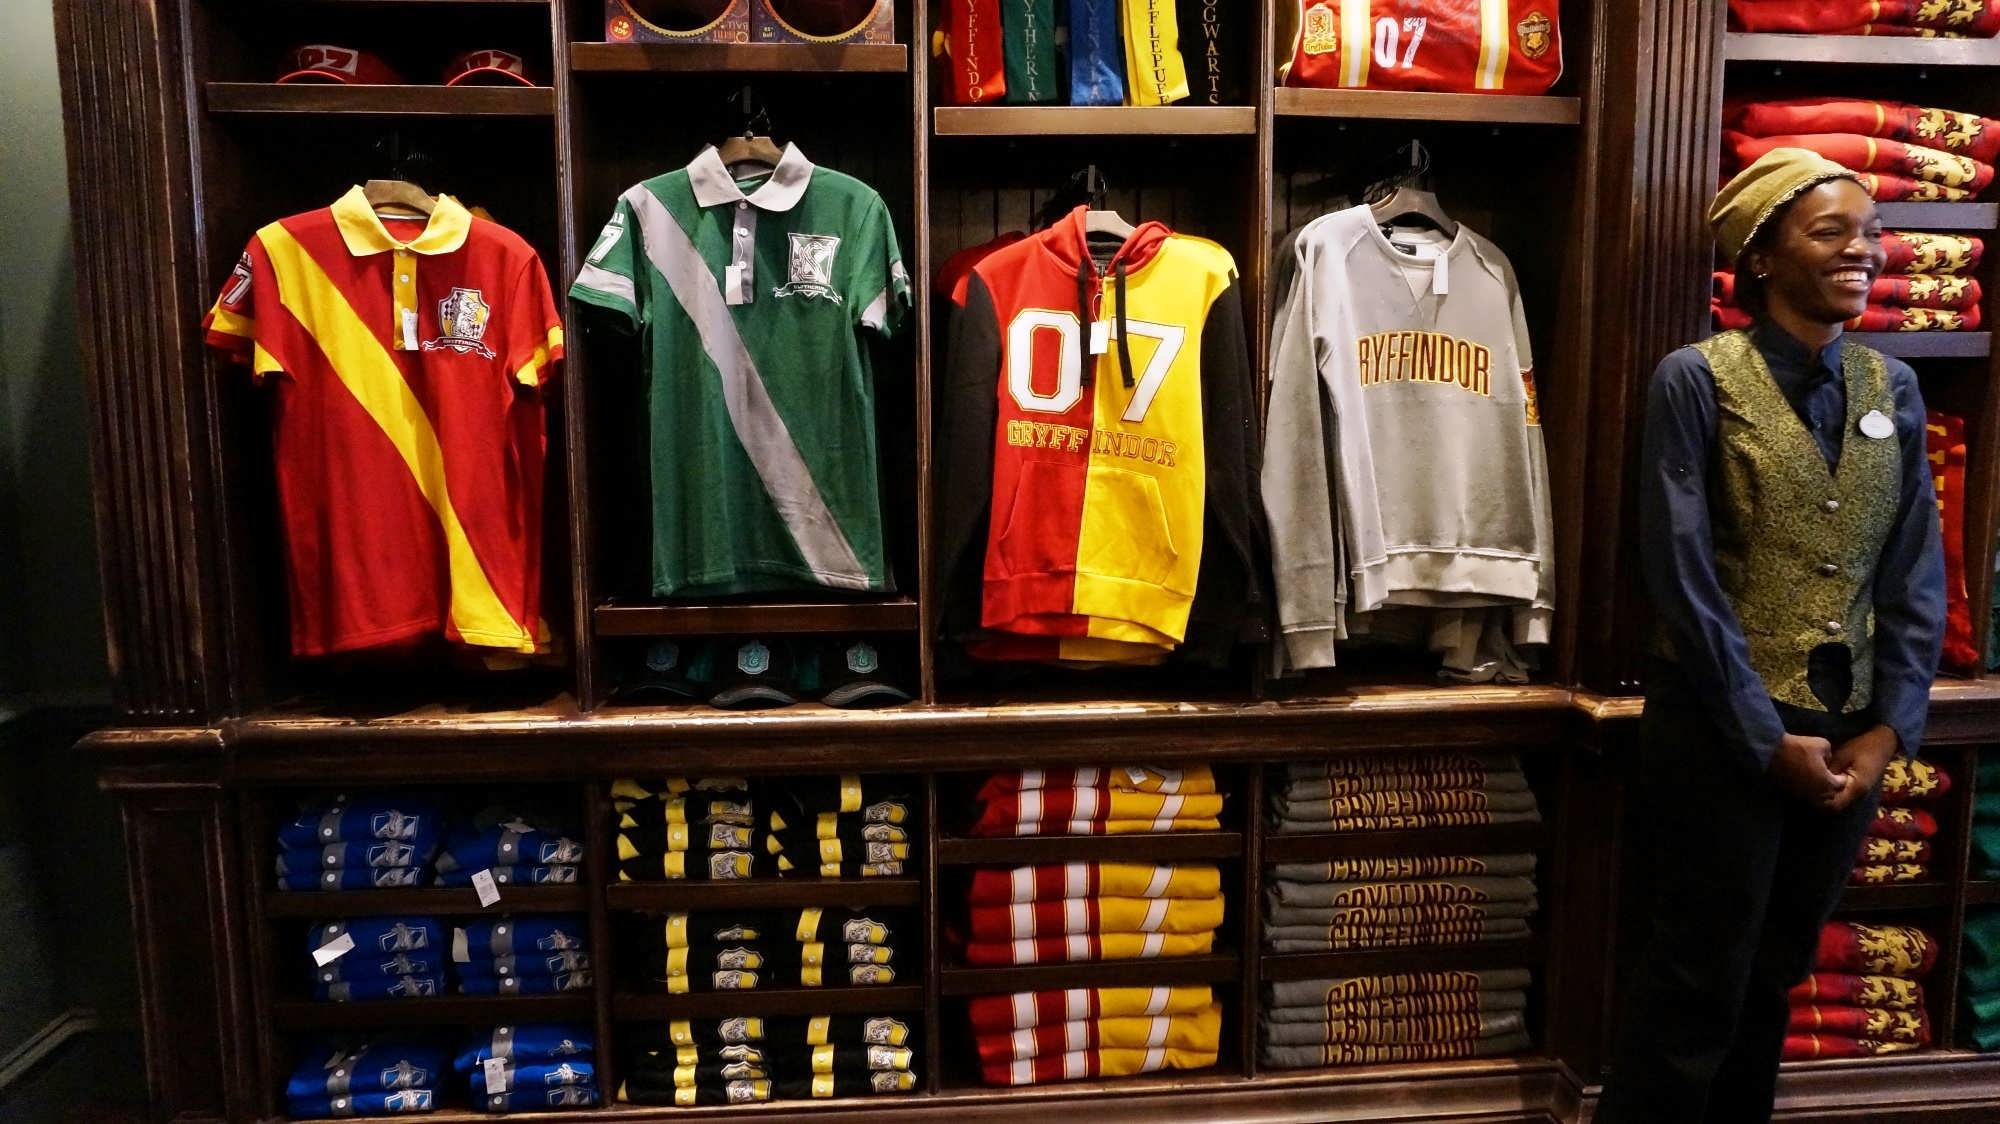 Quality Quidditch Supplies merchandise at the Wizarding World of Harry Potter - Diagon Alley